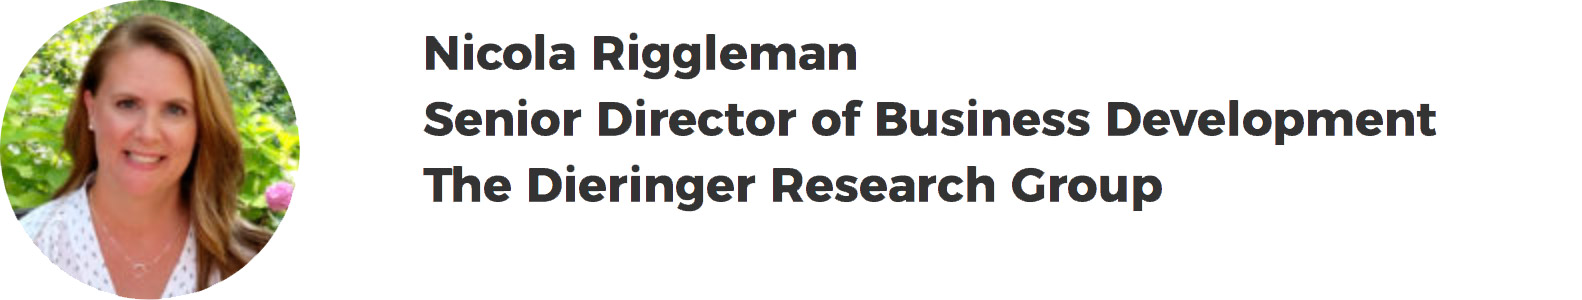 Nicola Riggleman – Senior Director of Business Development – The Dieringer Research Group